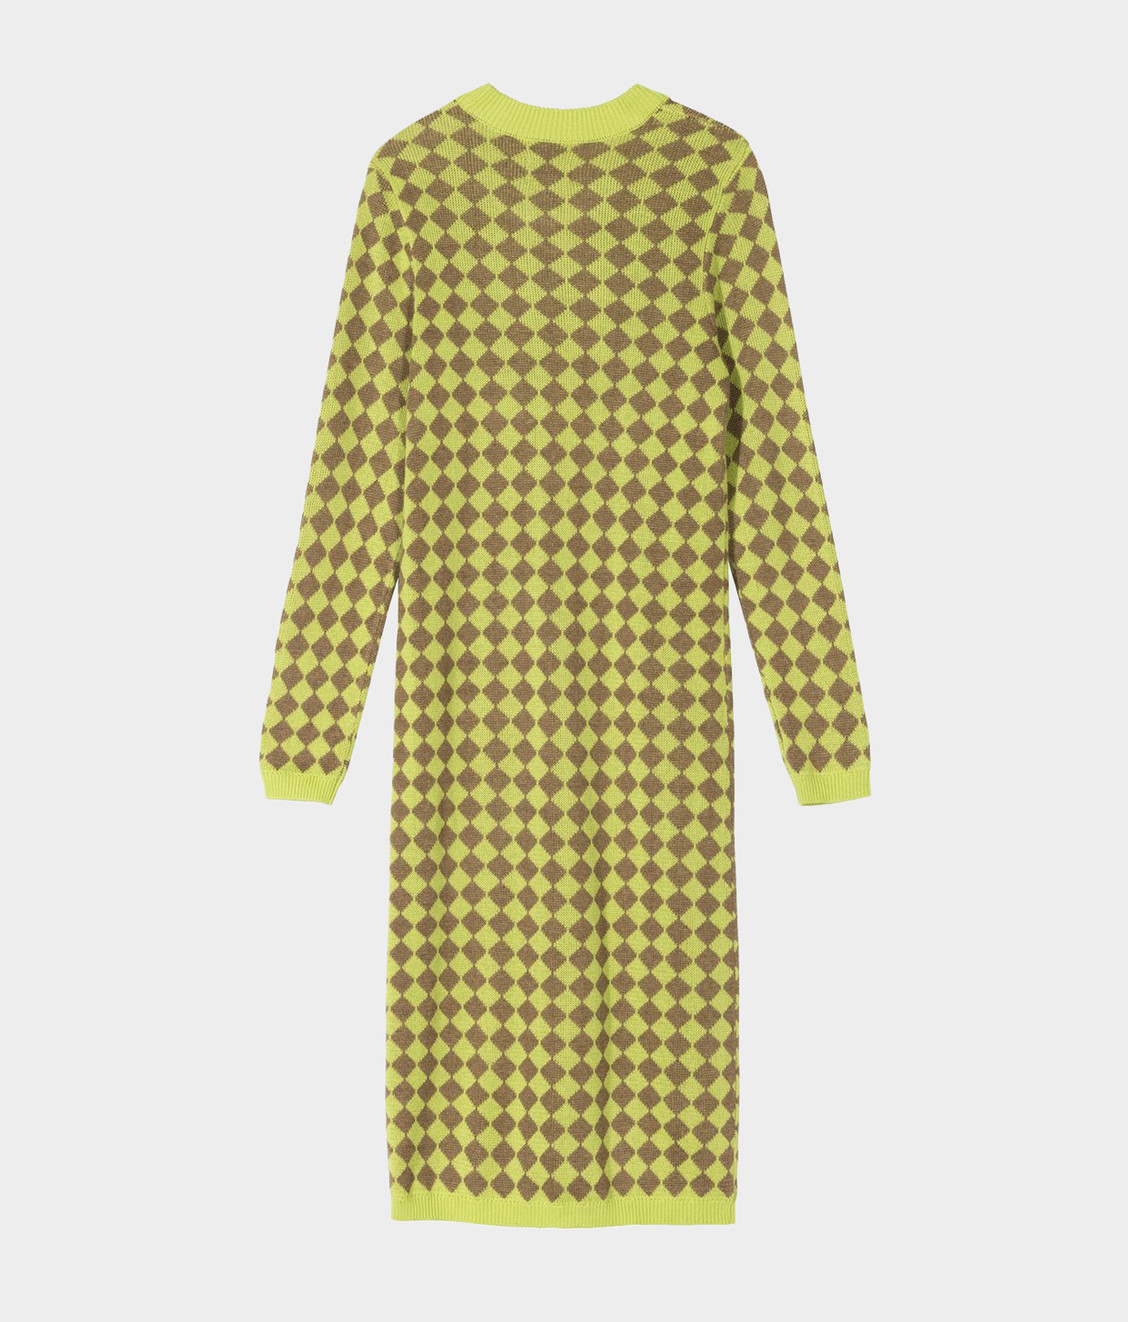 Stussy Stussy LS Melange Checker Dress Lime